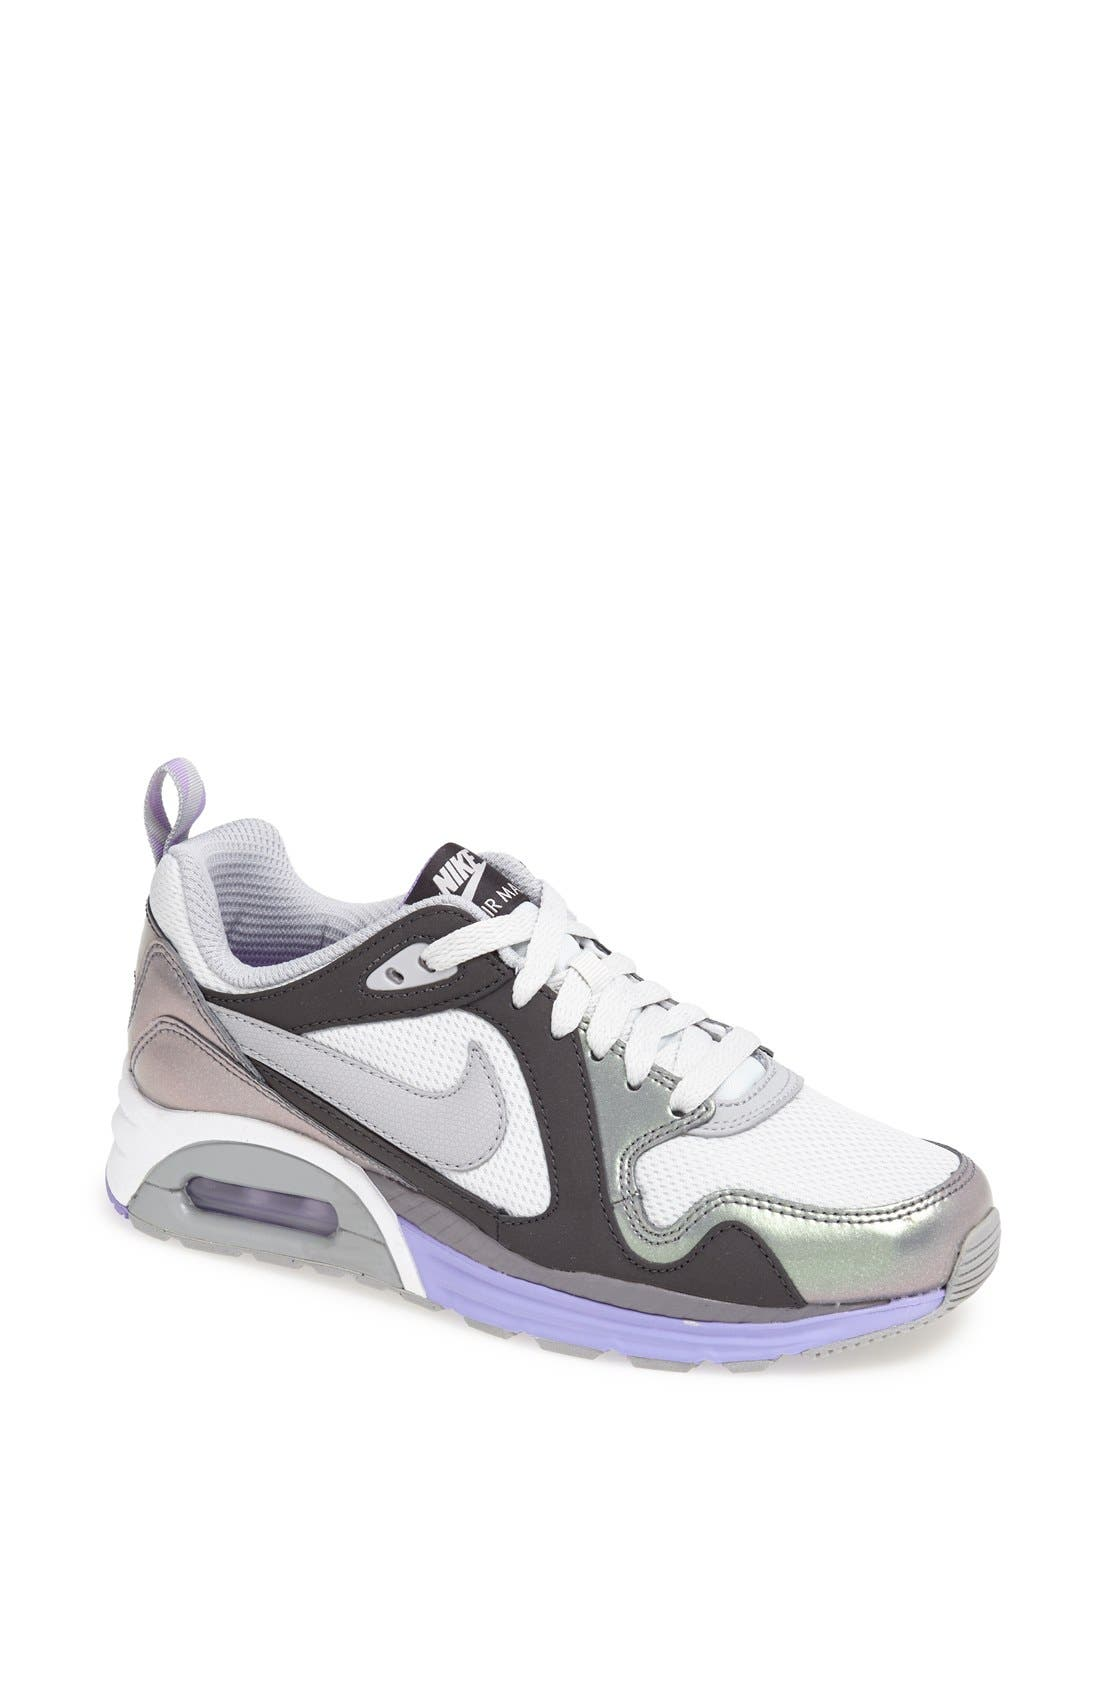 Main Image - Nike 'Aire Max Trax' Sneaker (Women)